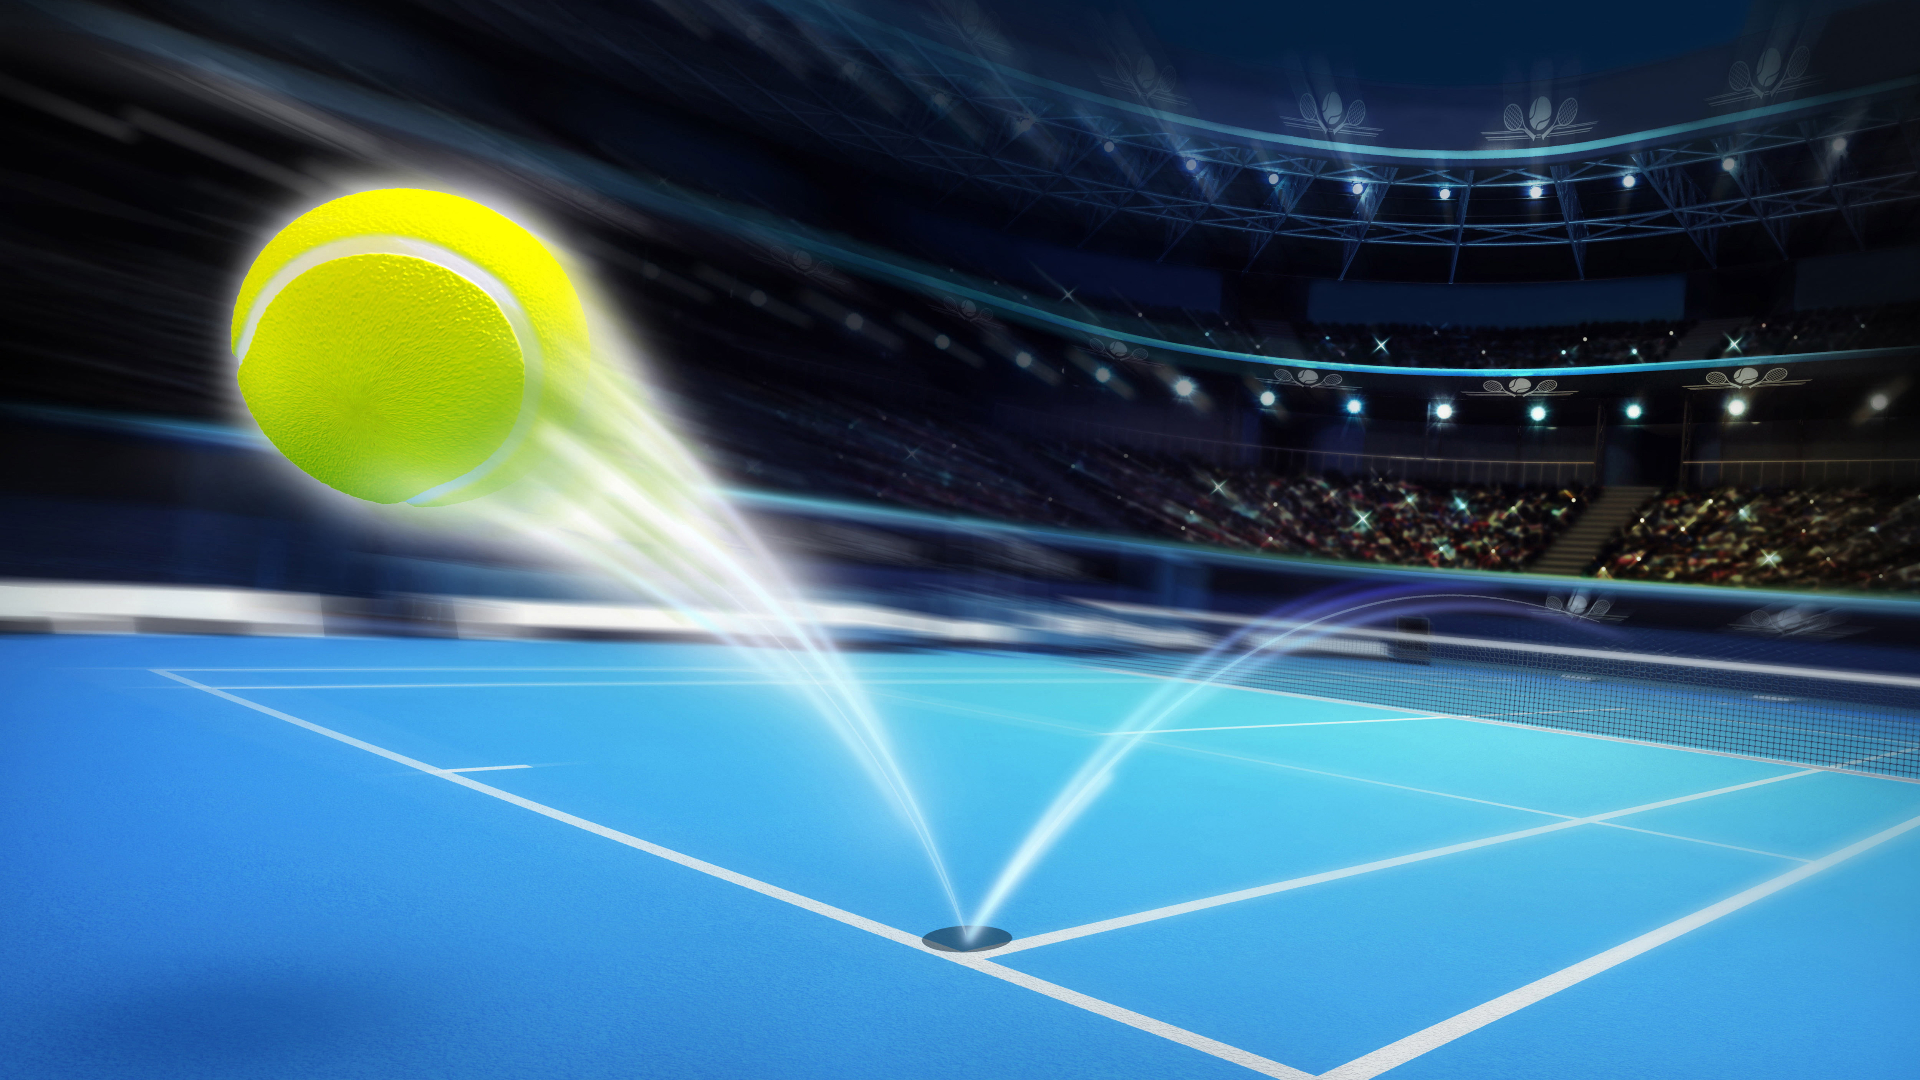 tennis images free